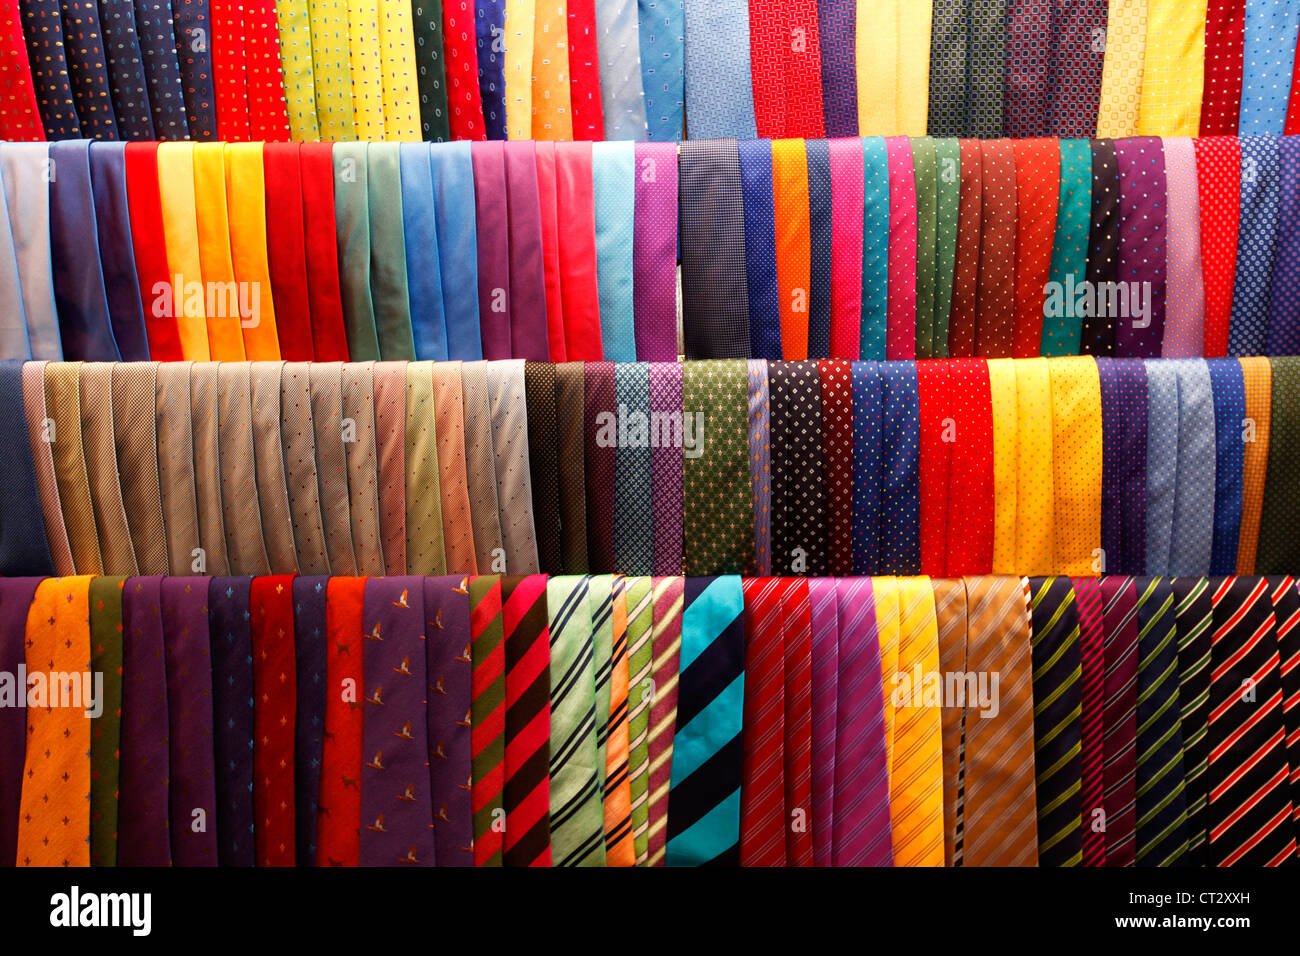 Ties, different colors, shapes, sizes, designs. - Stock Image